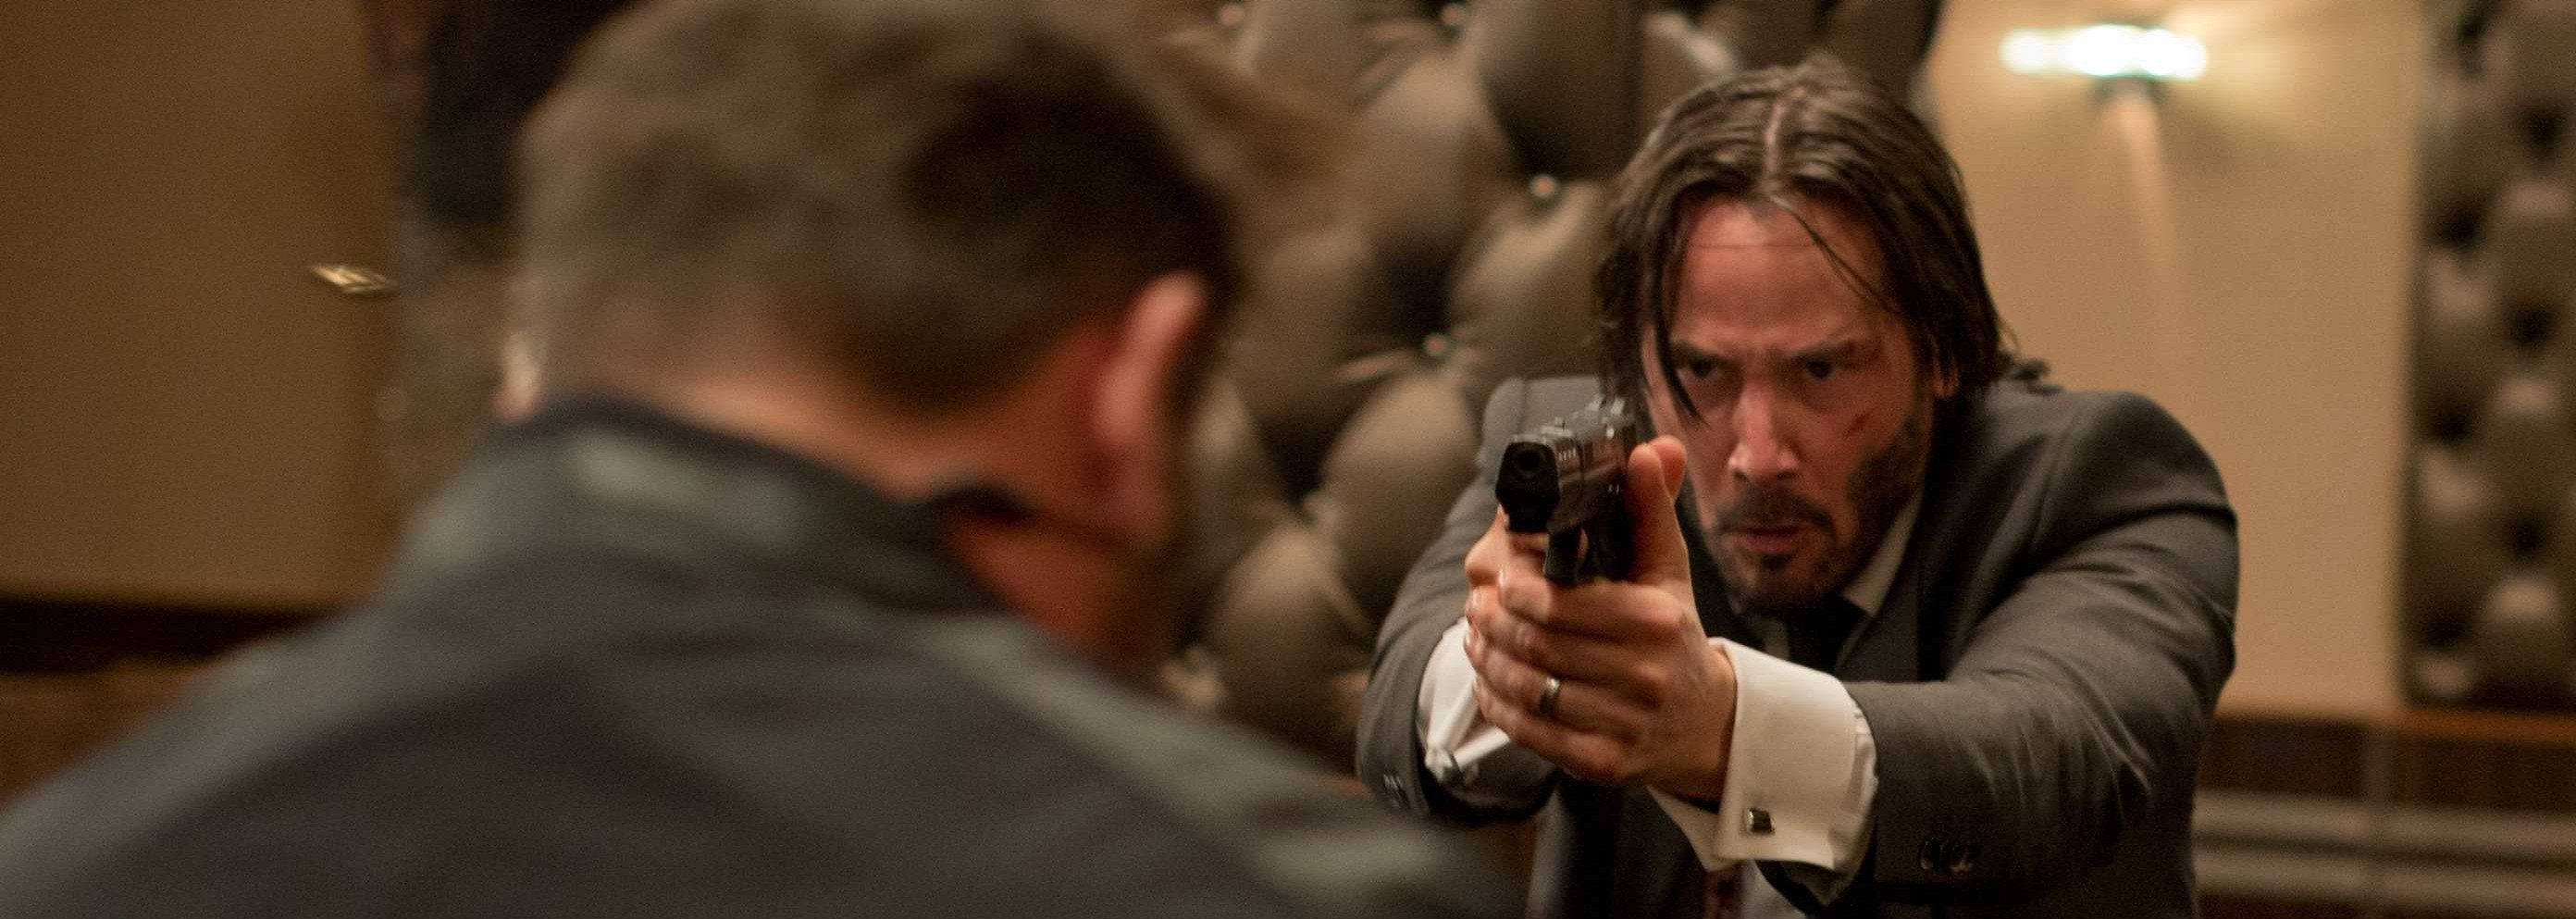 Film: John Wick feature image